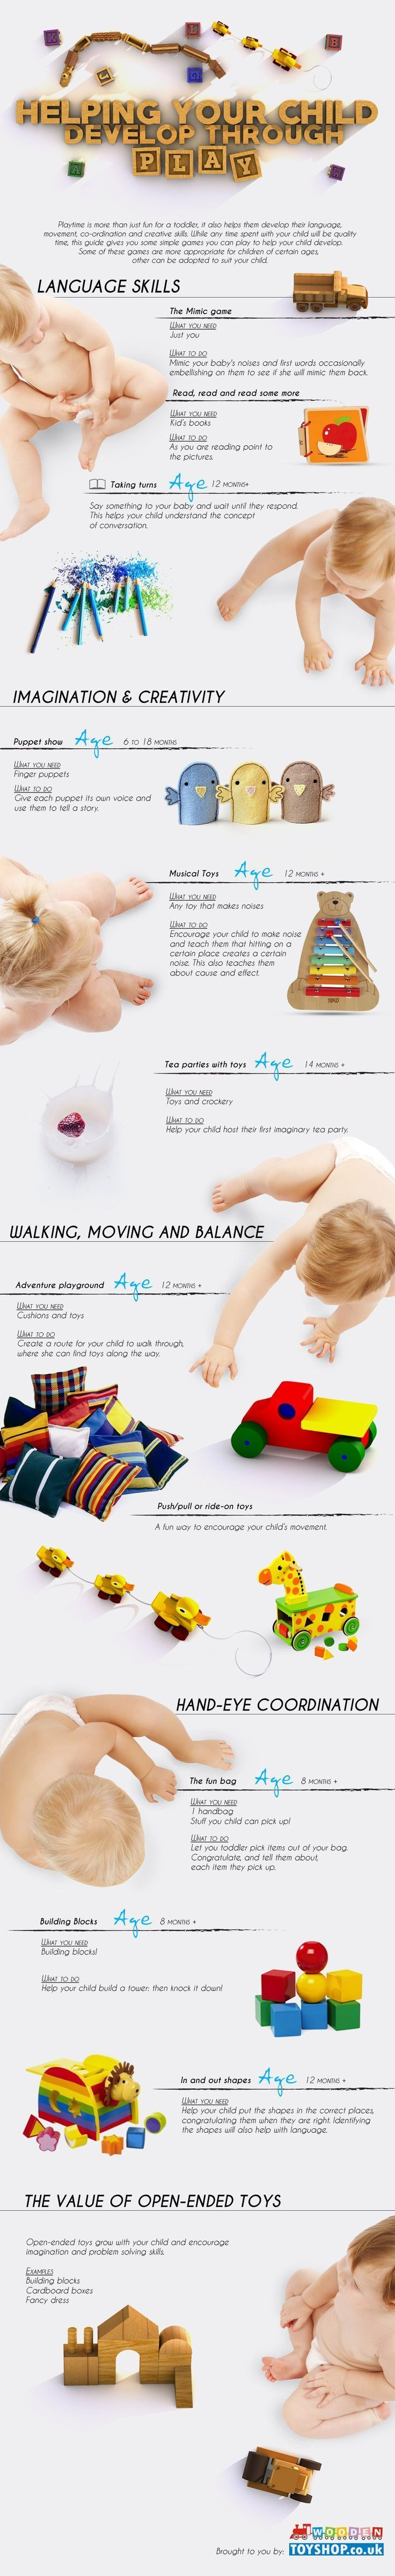 17 best images about child development on pinterest student centered resources childhood and Fine motor development toys